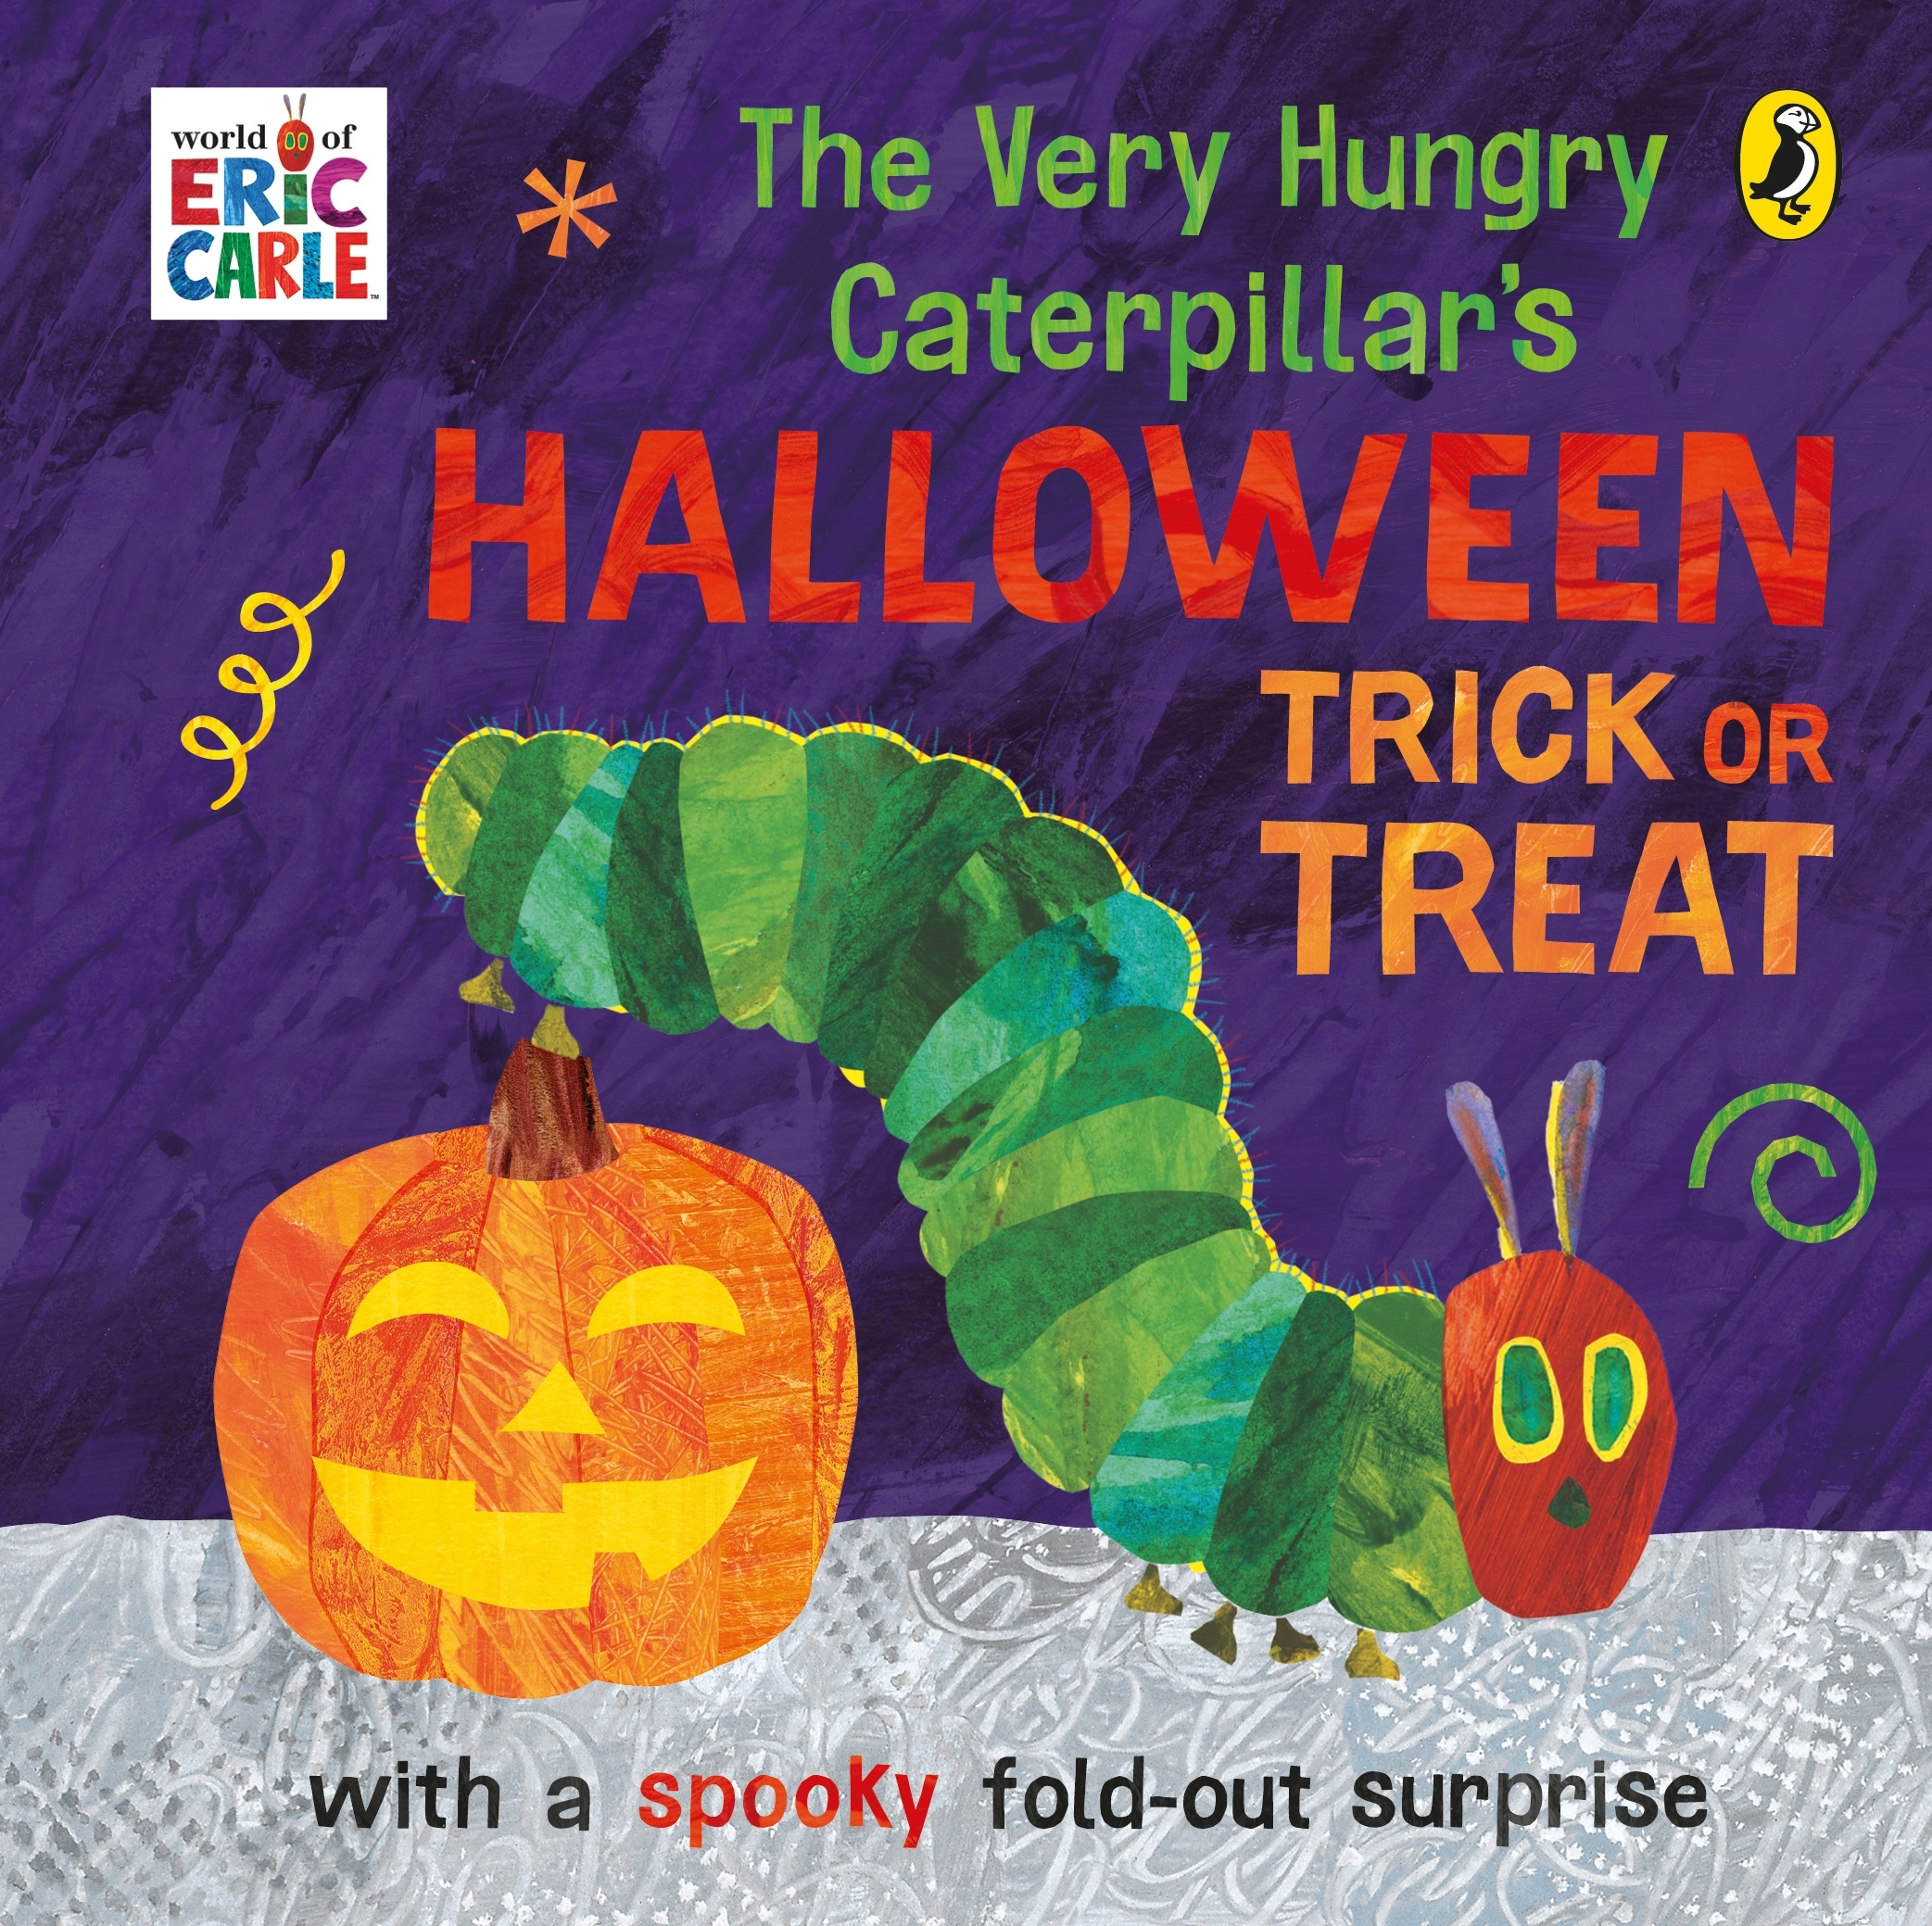 The Very Hungry Caterpillar's Halloween Trick or Treat